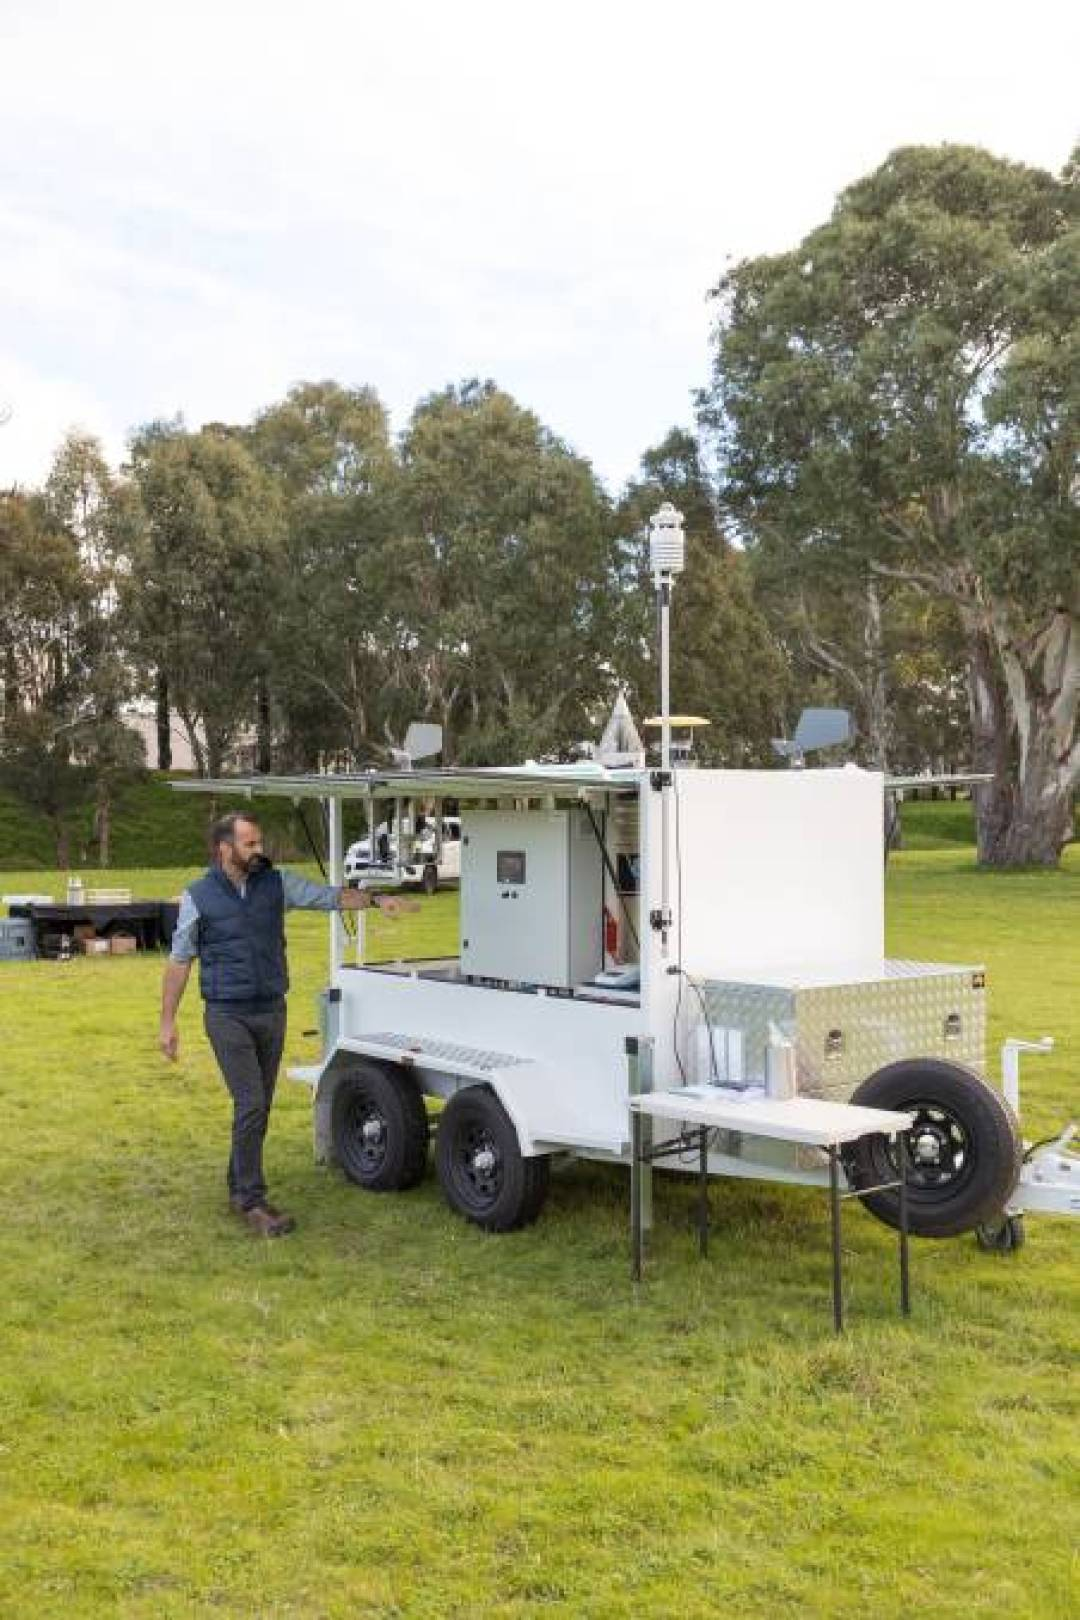 TECH: The Sentinel is a custom-designed surveillance trailer unit designed to offer optimal sampling of airborne fungal spores and insects.